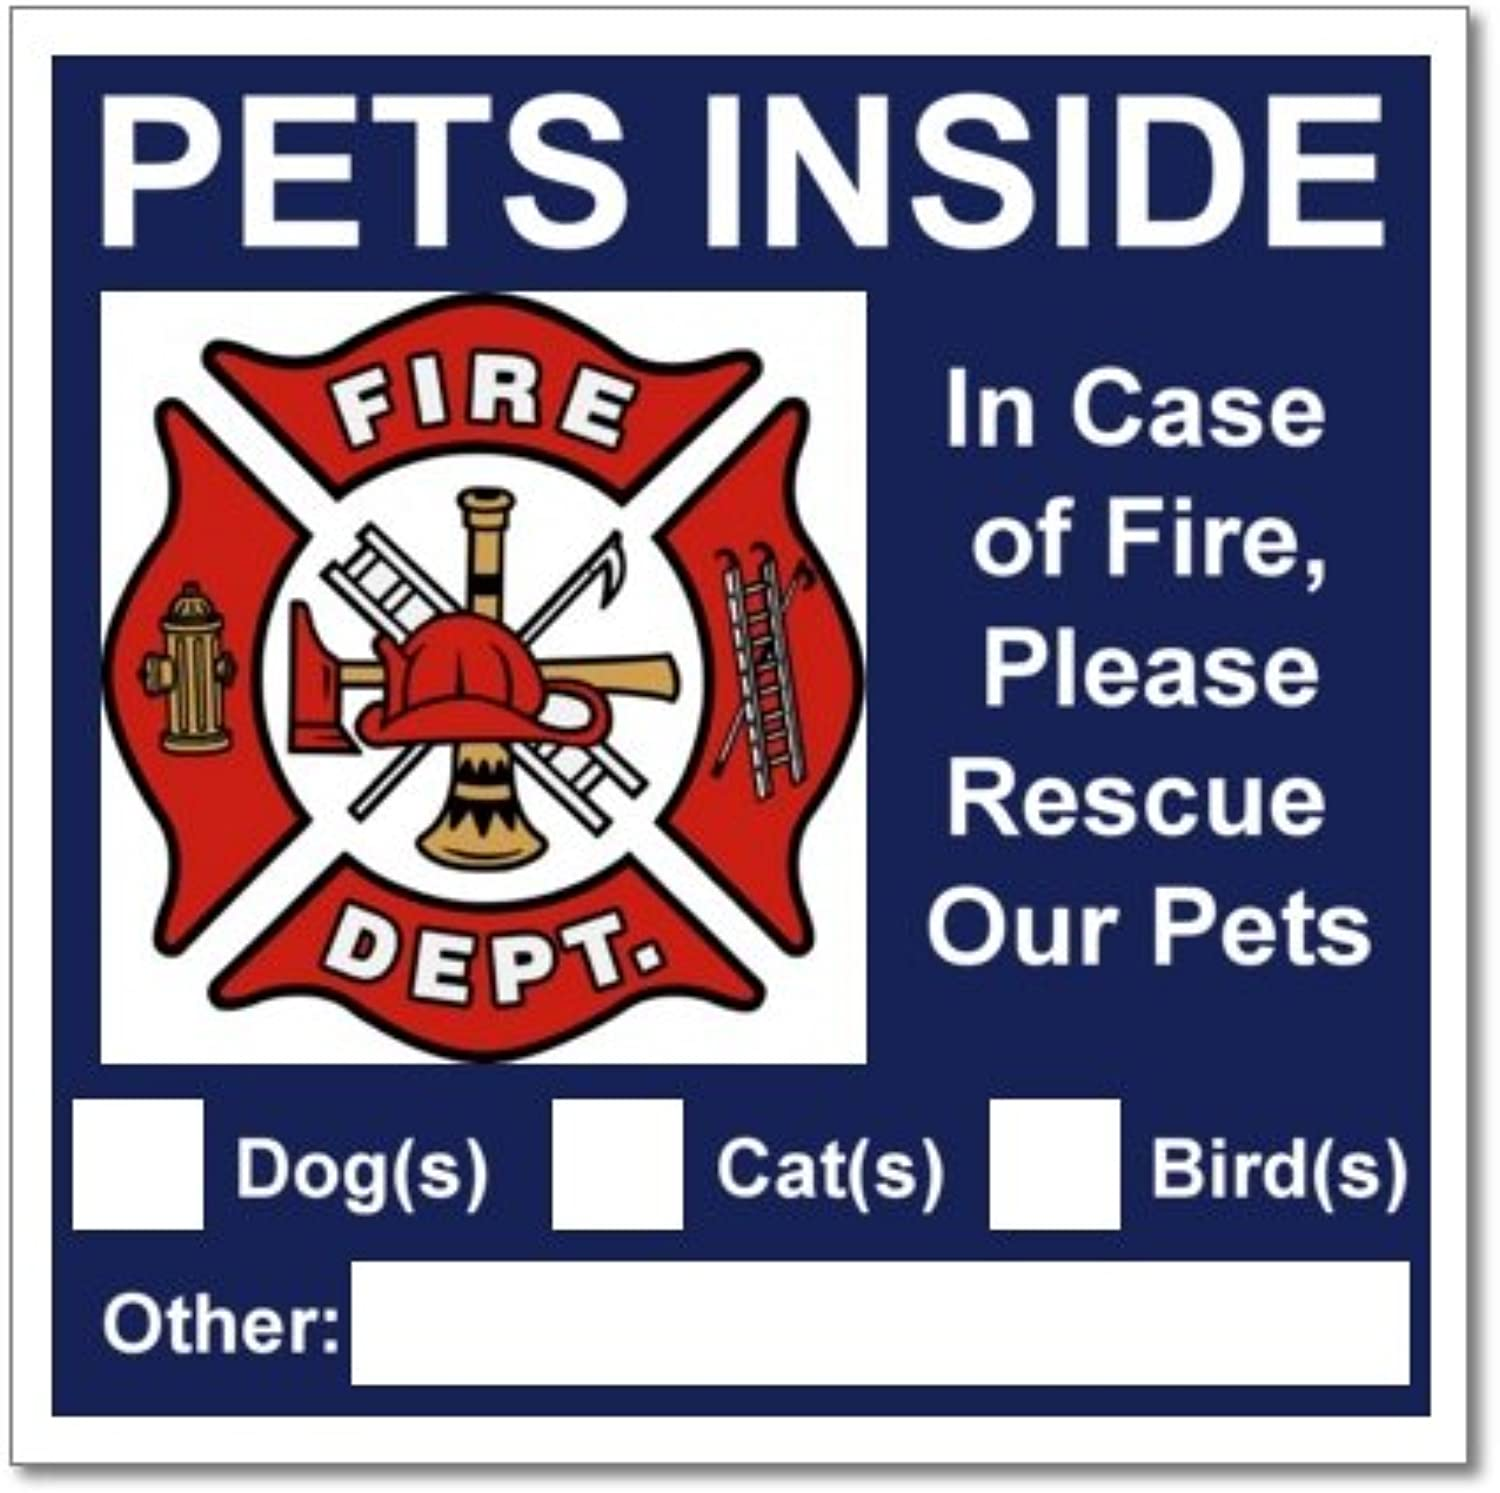 20 Pets Inside bluee Safety Alert Warning Window Door Stickers; In Fire or Emergency Notify Rescue Personnel to Save Pet